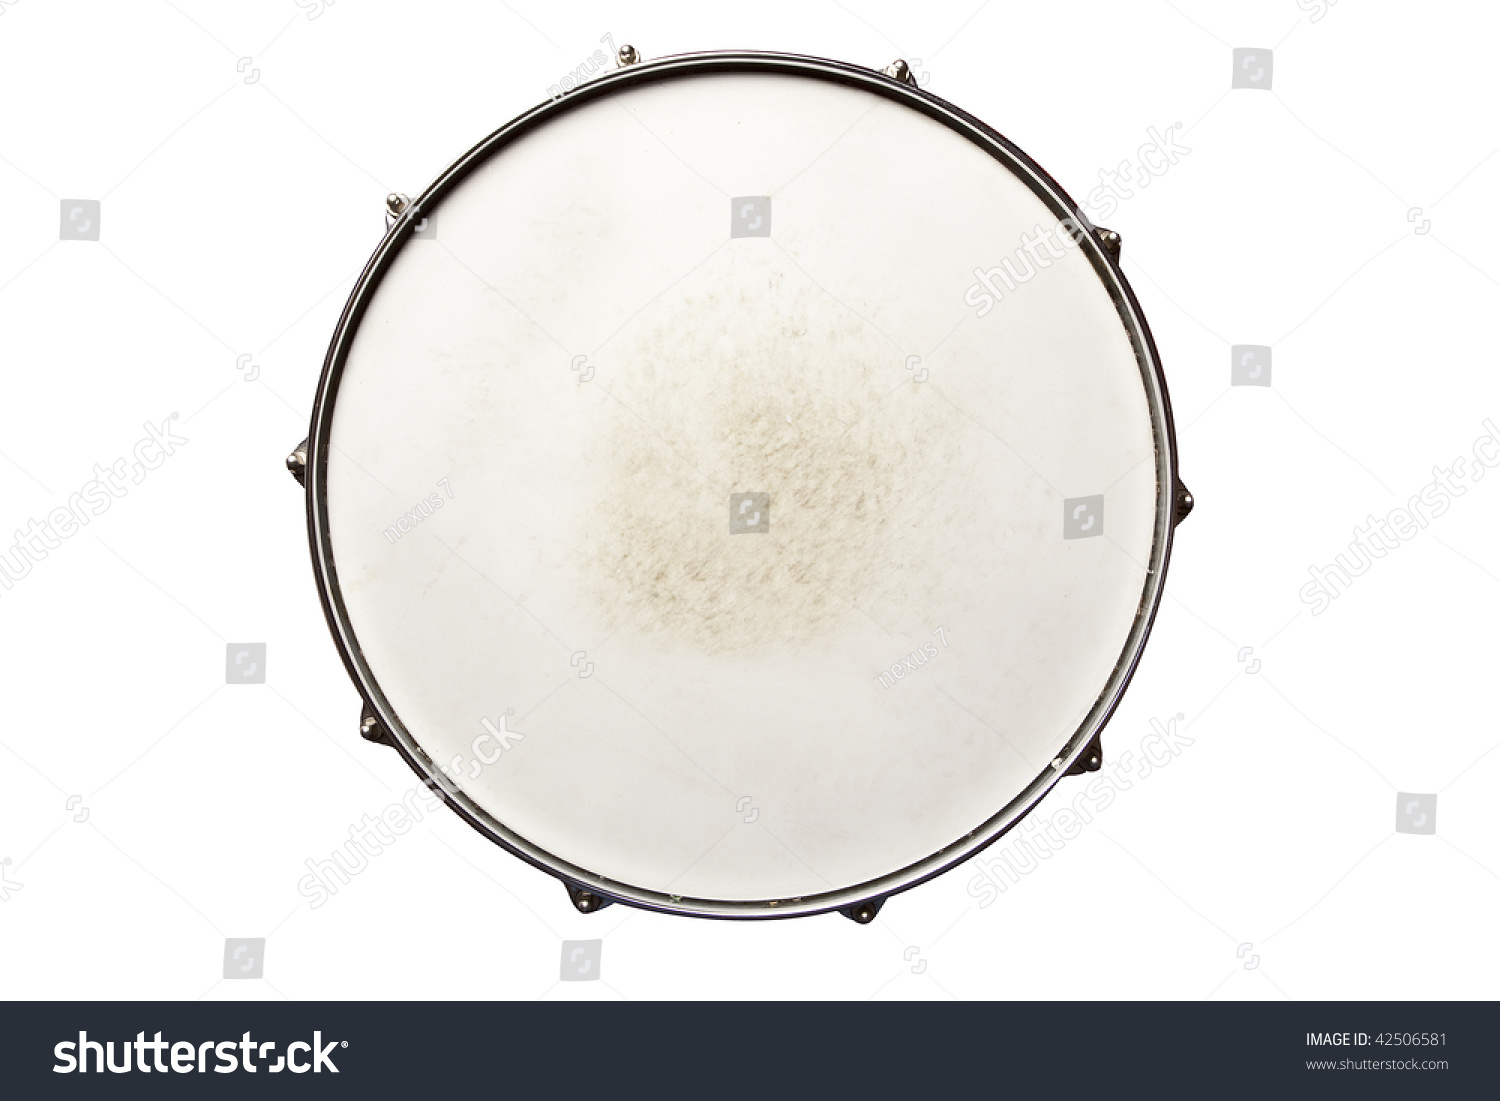 Snare Drum Top View Isolated On White Stock Photo 42506581 ...